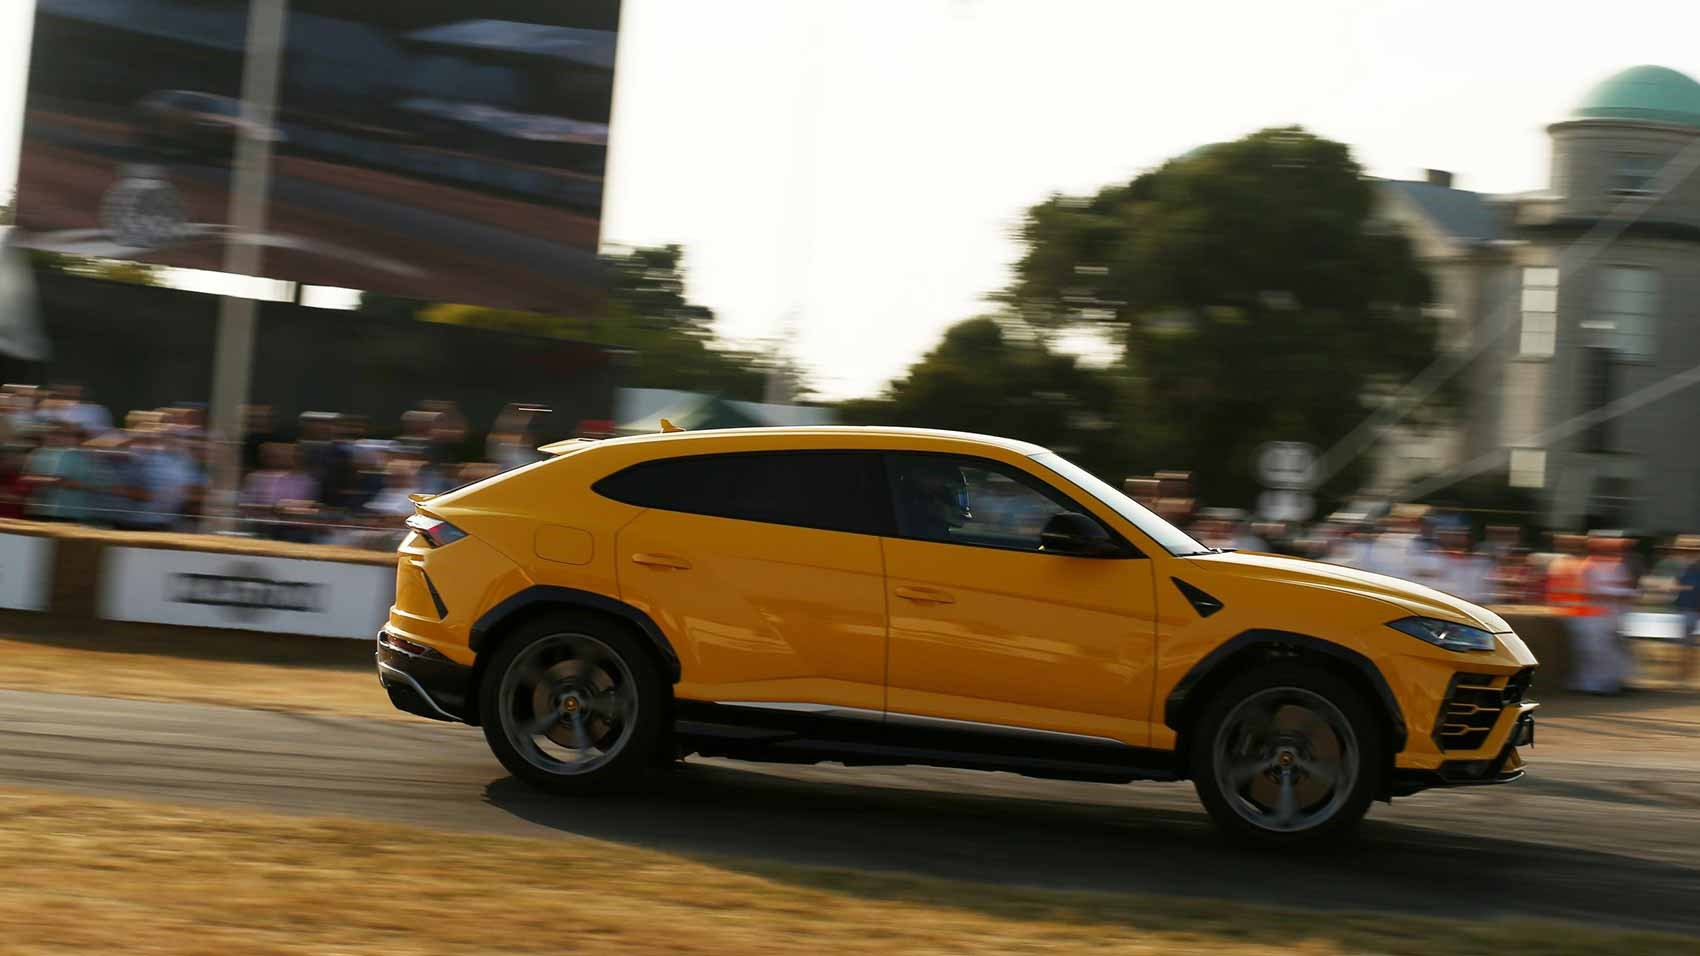 Lamborghini Urus at the 2018 Goodwood Festival of Speed: we drove the first one in the UK